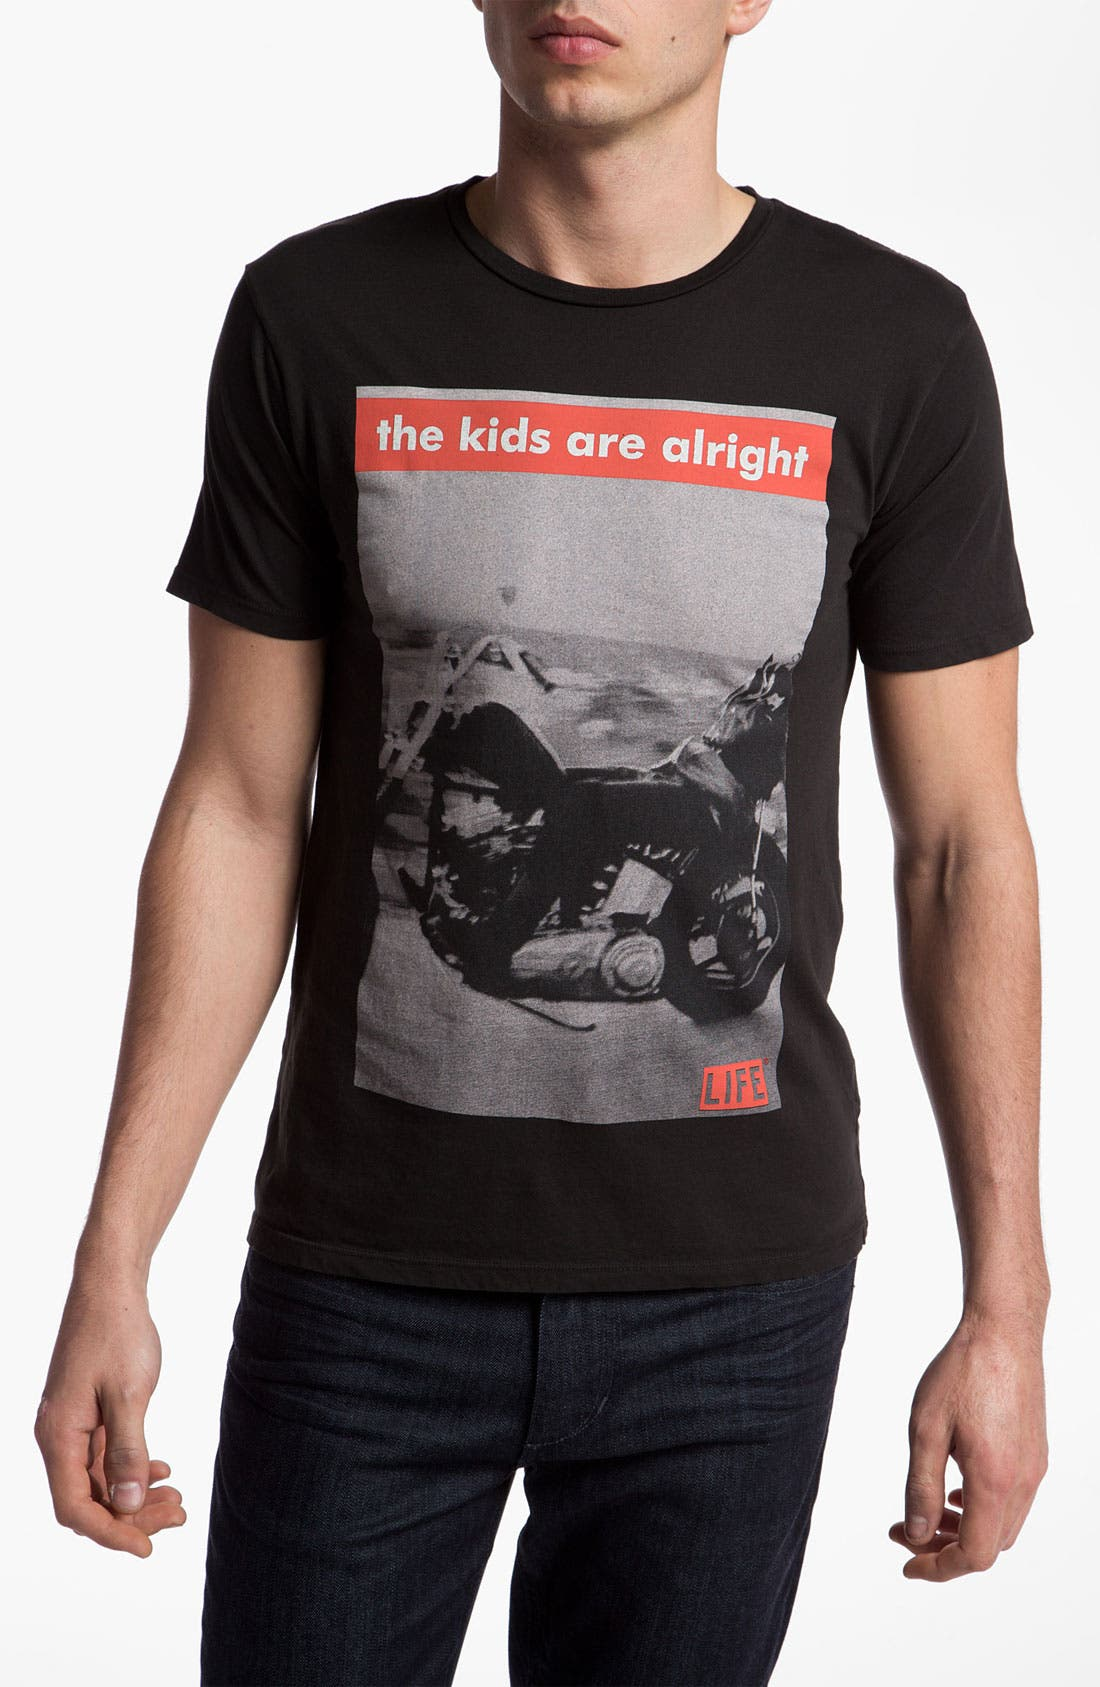 Alternate Image 1 Selected - Altru 'Kids Are Alright' Graphic T-Shirt